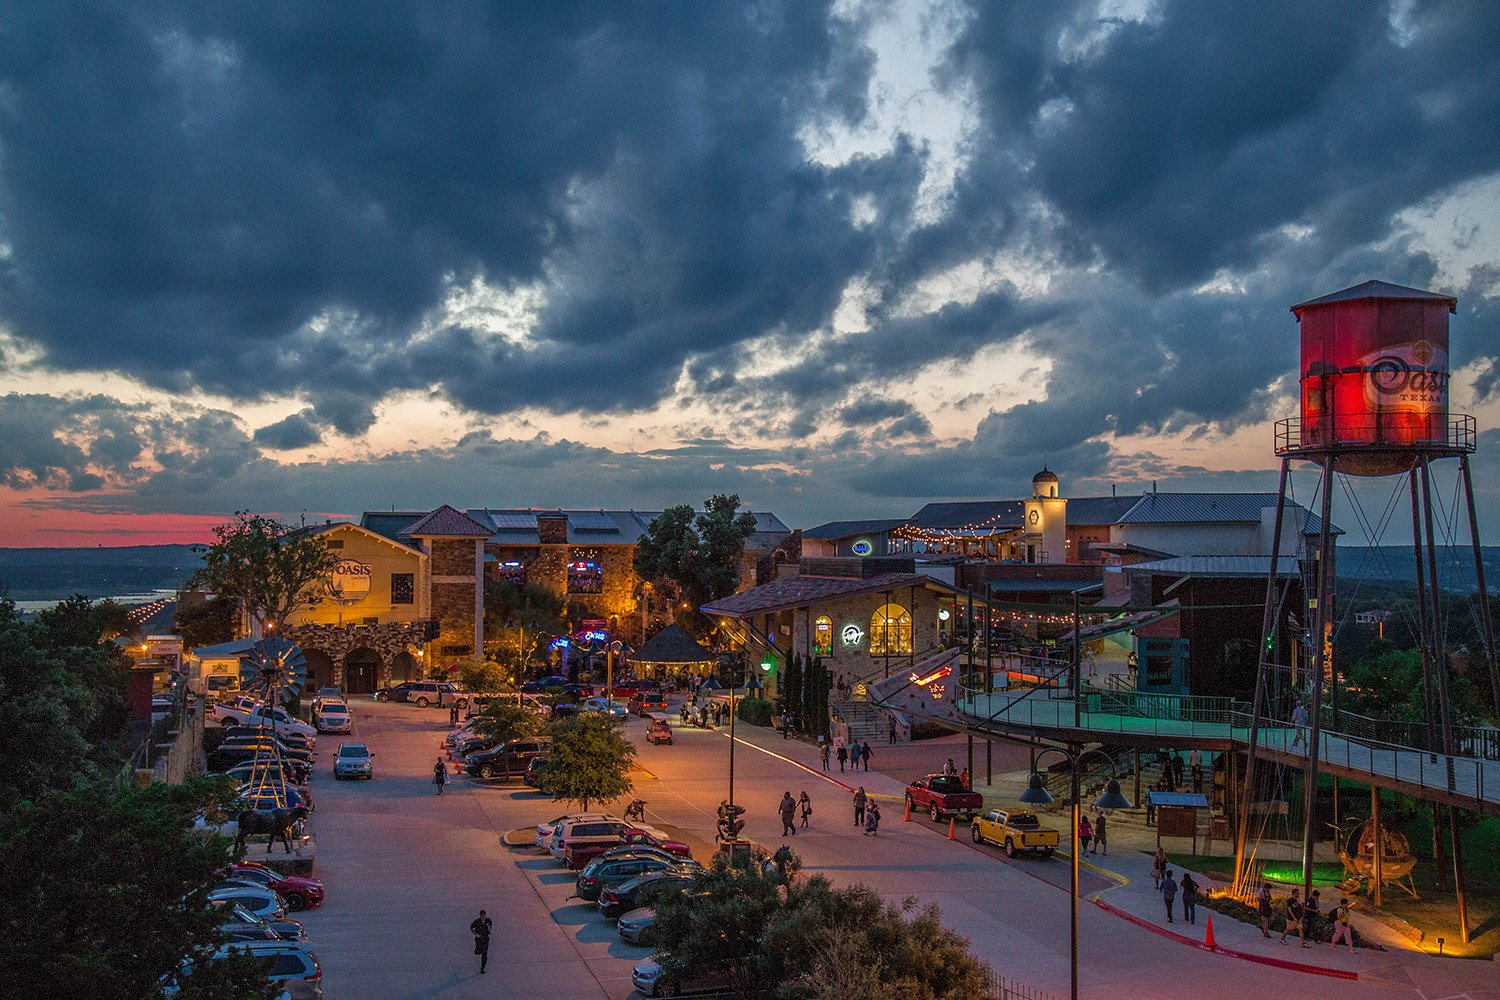 Restaurants and retail make up the bustling Oasis TX entertainment complex perched 450 above the waters of Lake Travis.